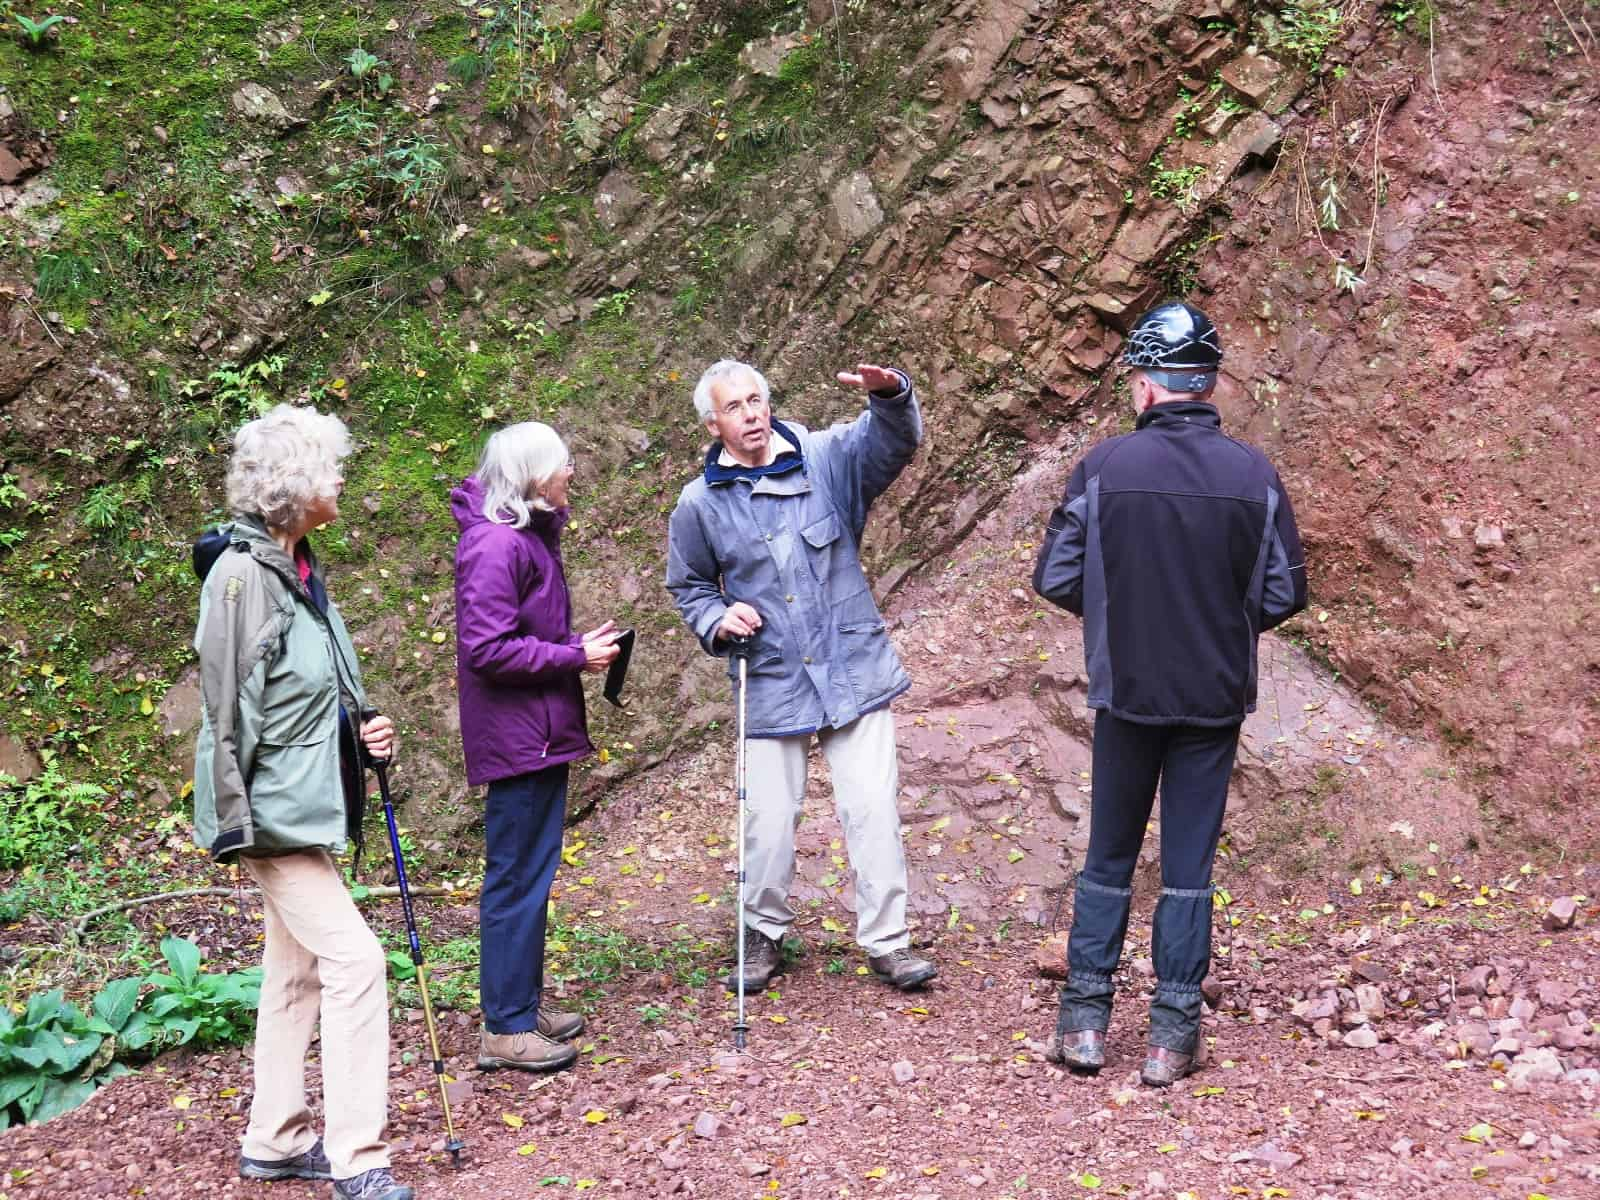 Tectonics explained by Nigel Woodcock at the Lickey Quartzite Barnt Green Road quarry.